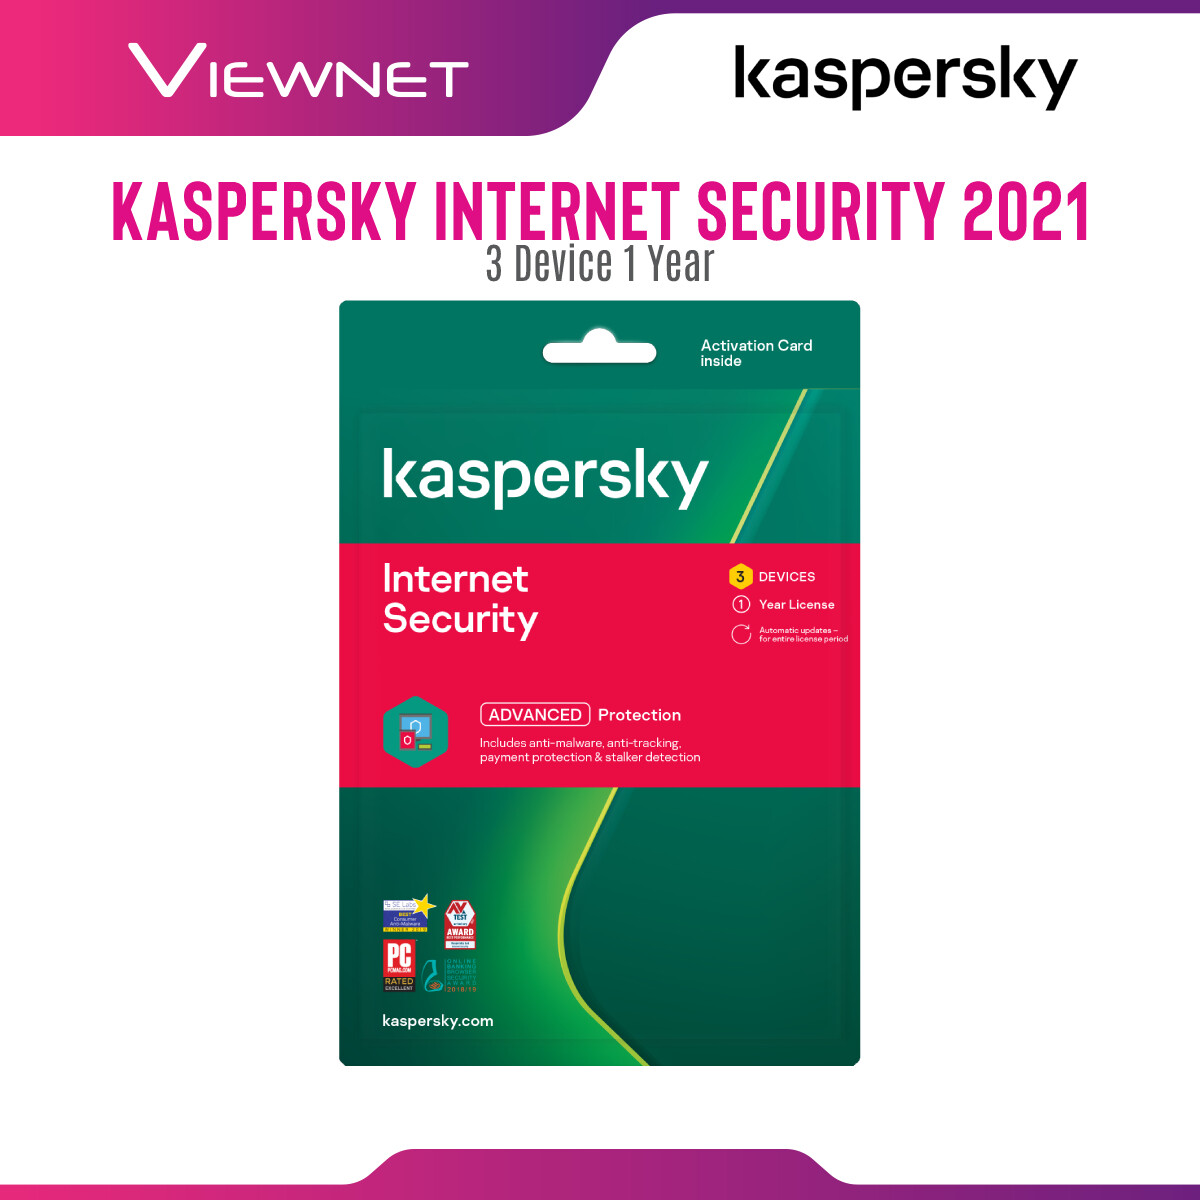 Kaspersky Internet Security 3 Device 1 Year License